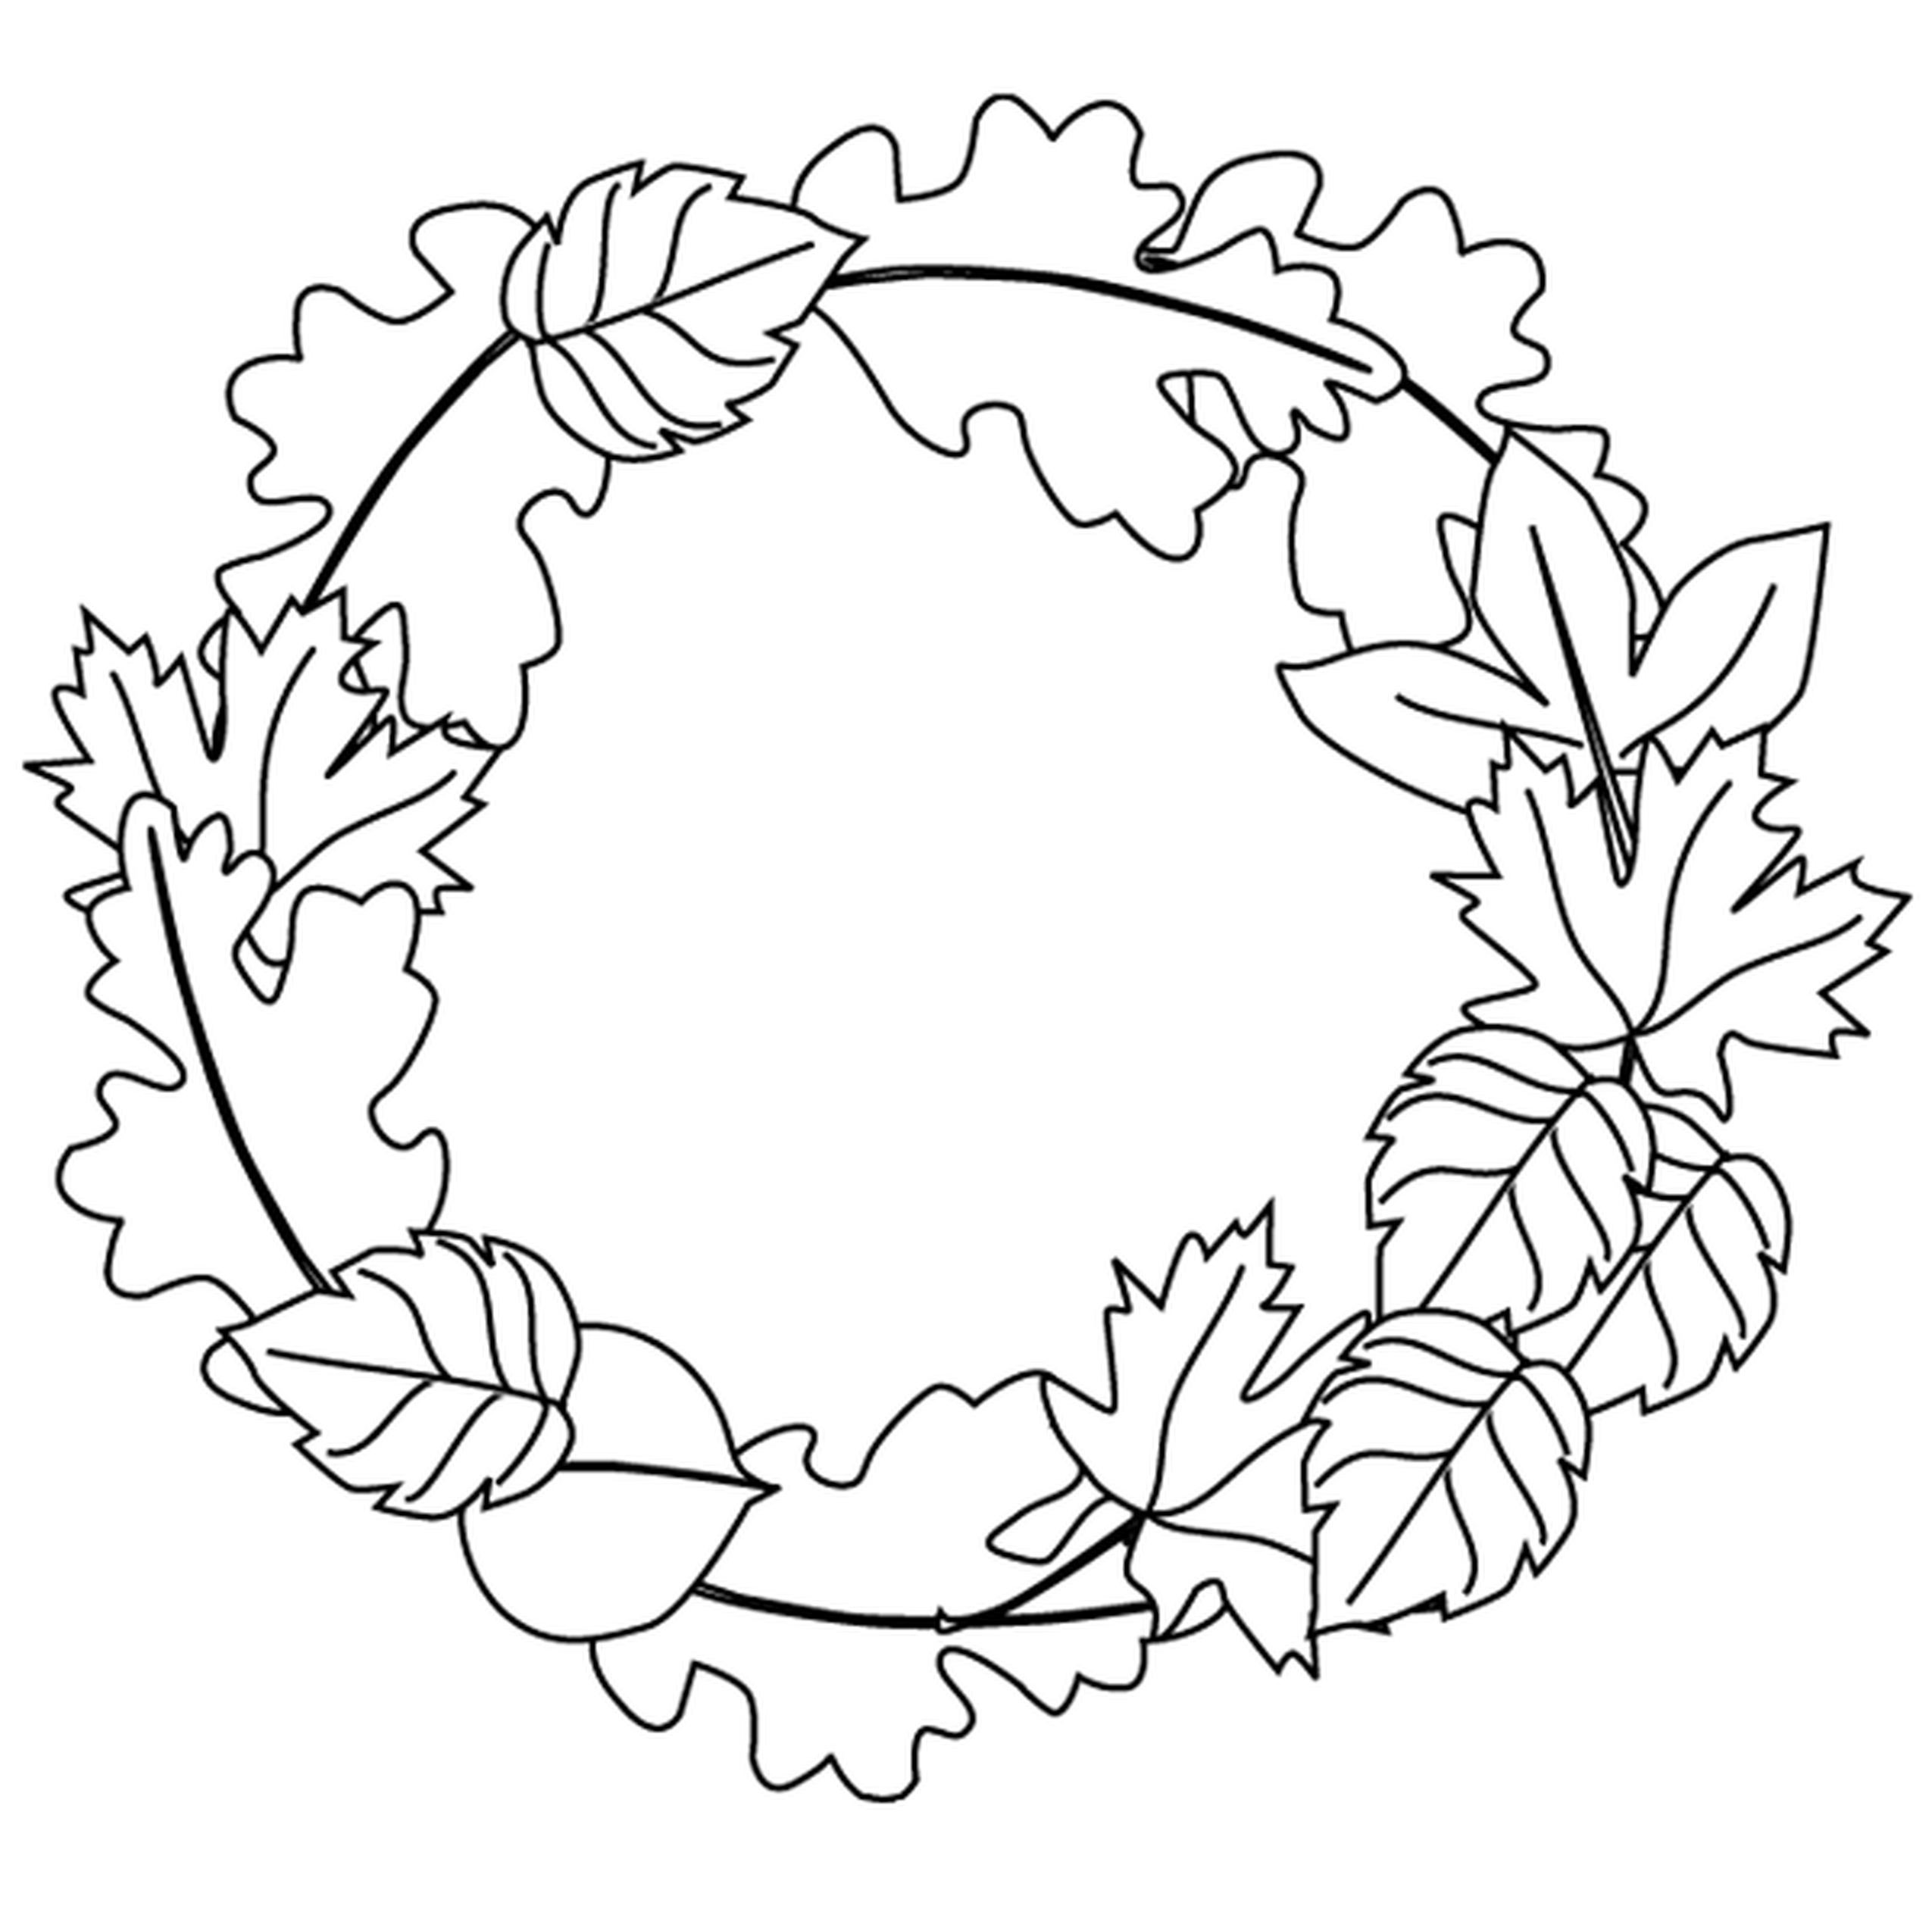 Fall Leaves Coloring Sheet  Autumn Leaves Coloring Pages Bestofcoloring